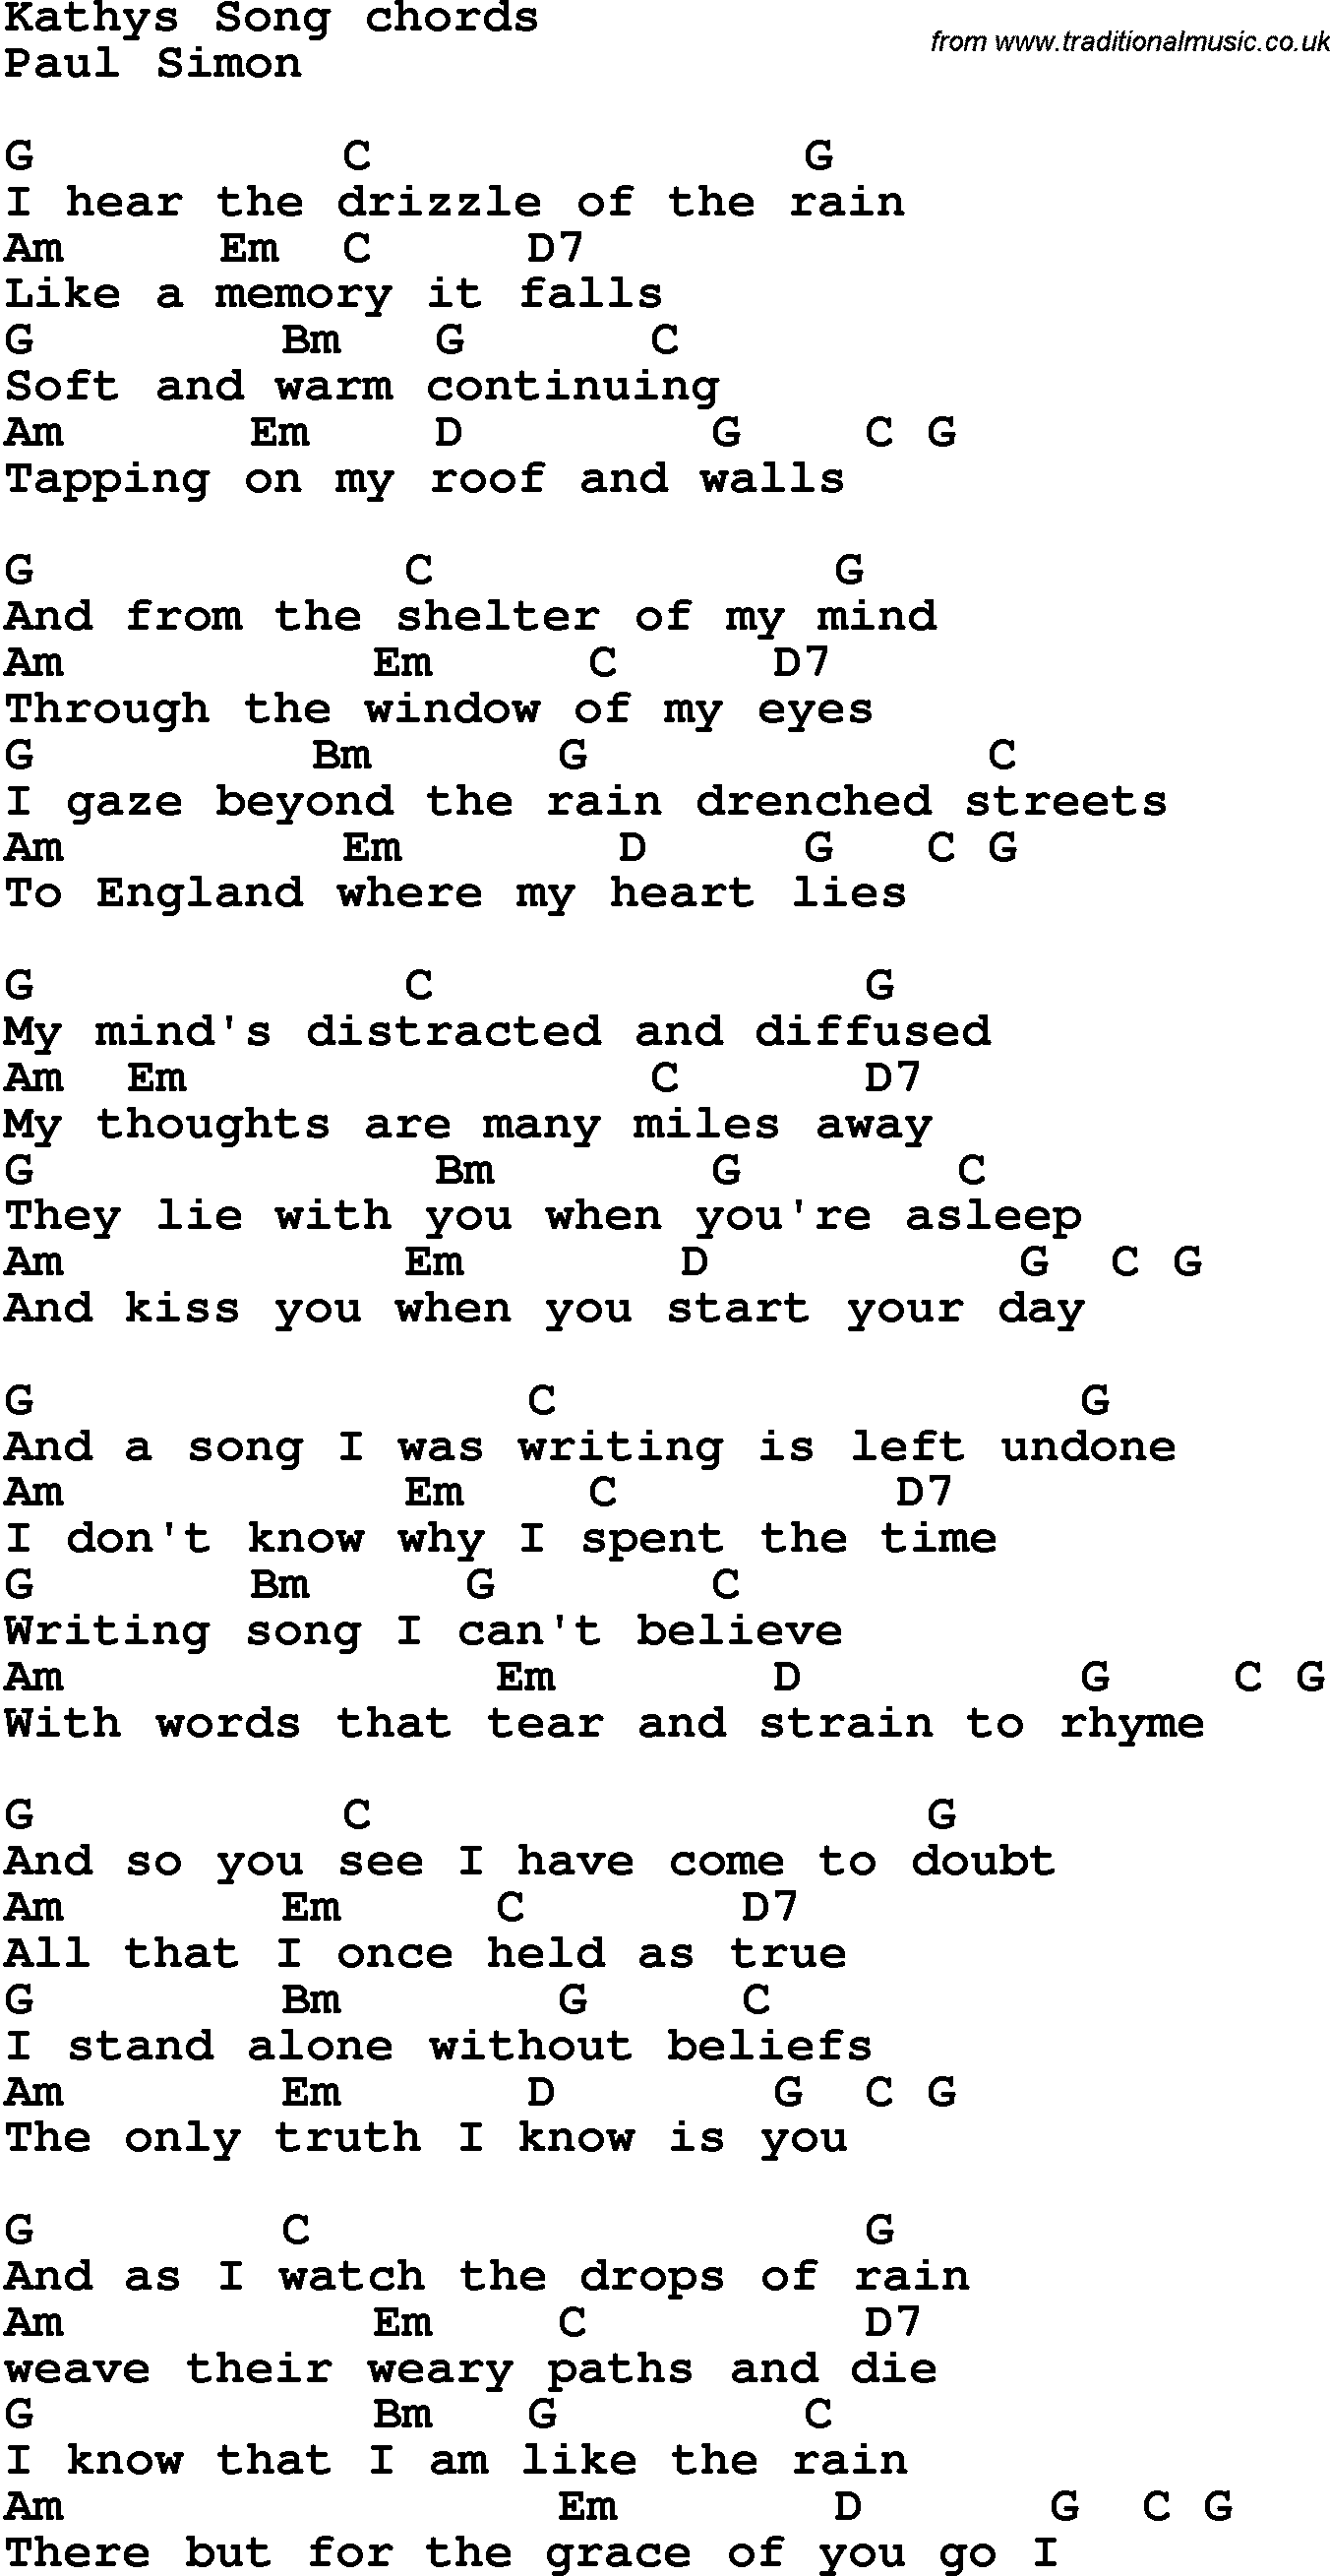 Song Lyrics With Guitar Chords For Kathys Song